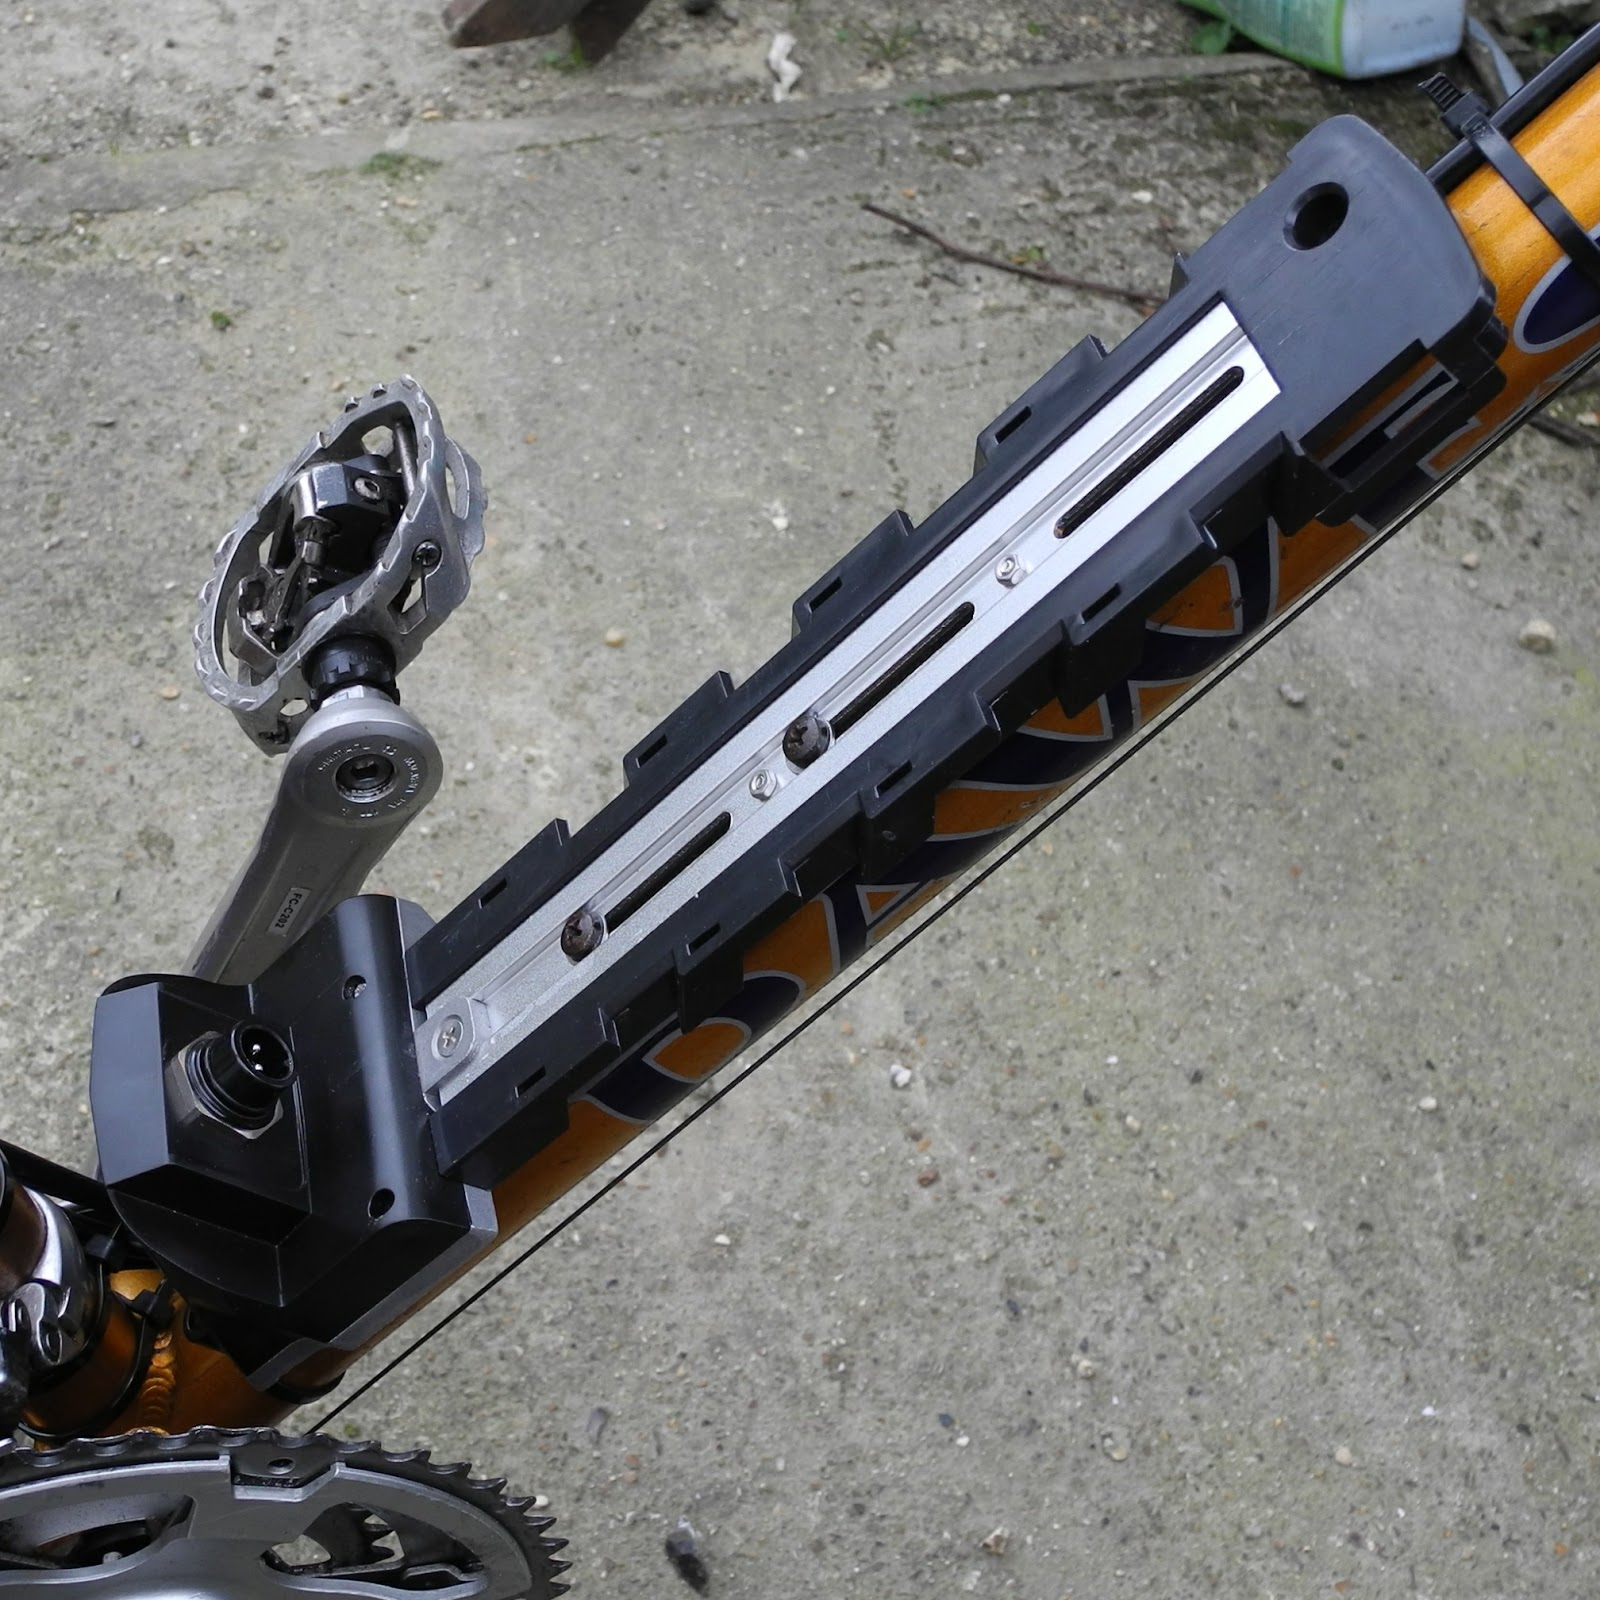 Terry\'s Gibson\'s Blog: Converting my Dawes Sonoran to an E-Bike Part ...